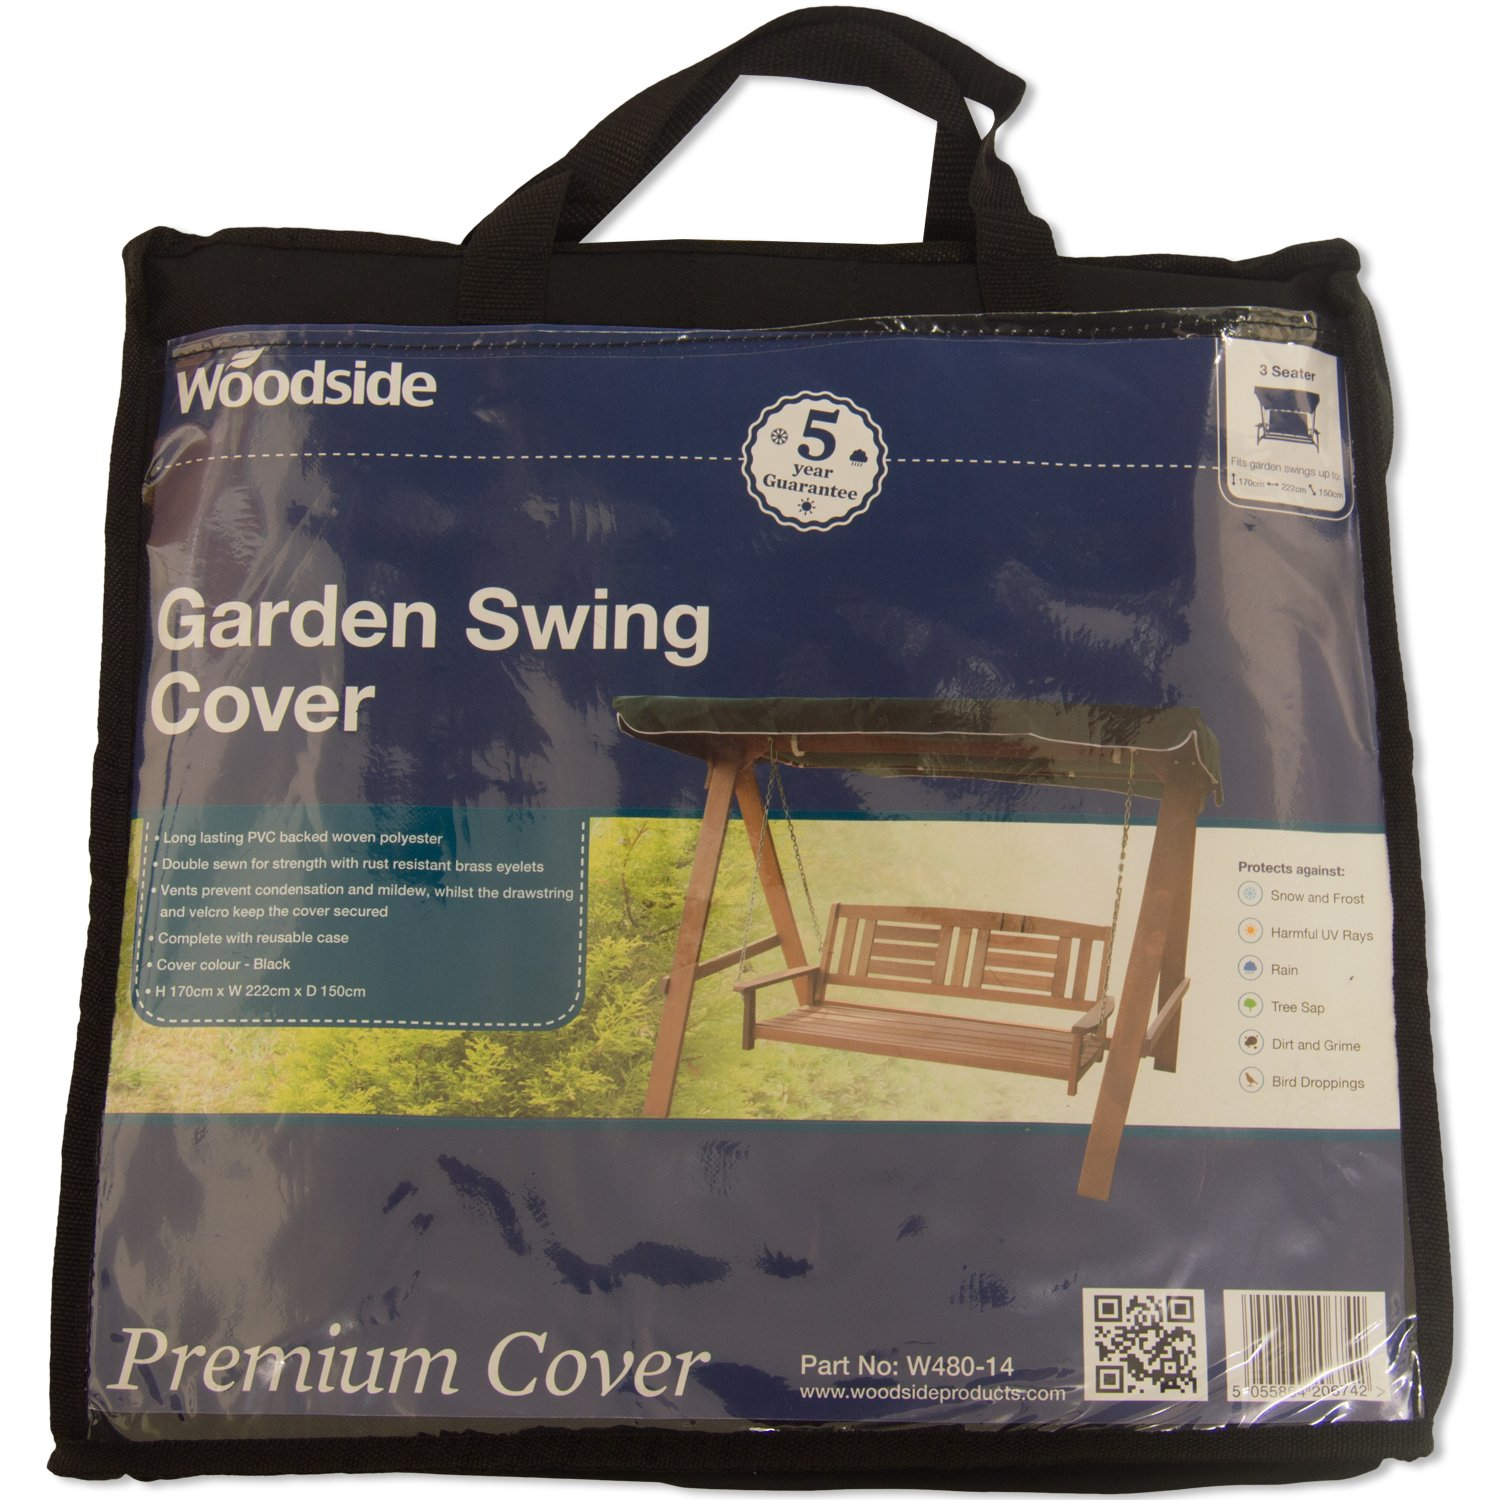 5.6ft x 7.3ft x 5ft 5 YEAR GUARANTEE Woodside Black 3 Seater Outdoor Garden Swinging Hammock Cover 1.7m x 2.22m x 1.5m